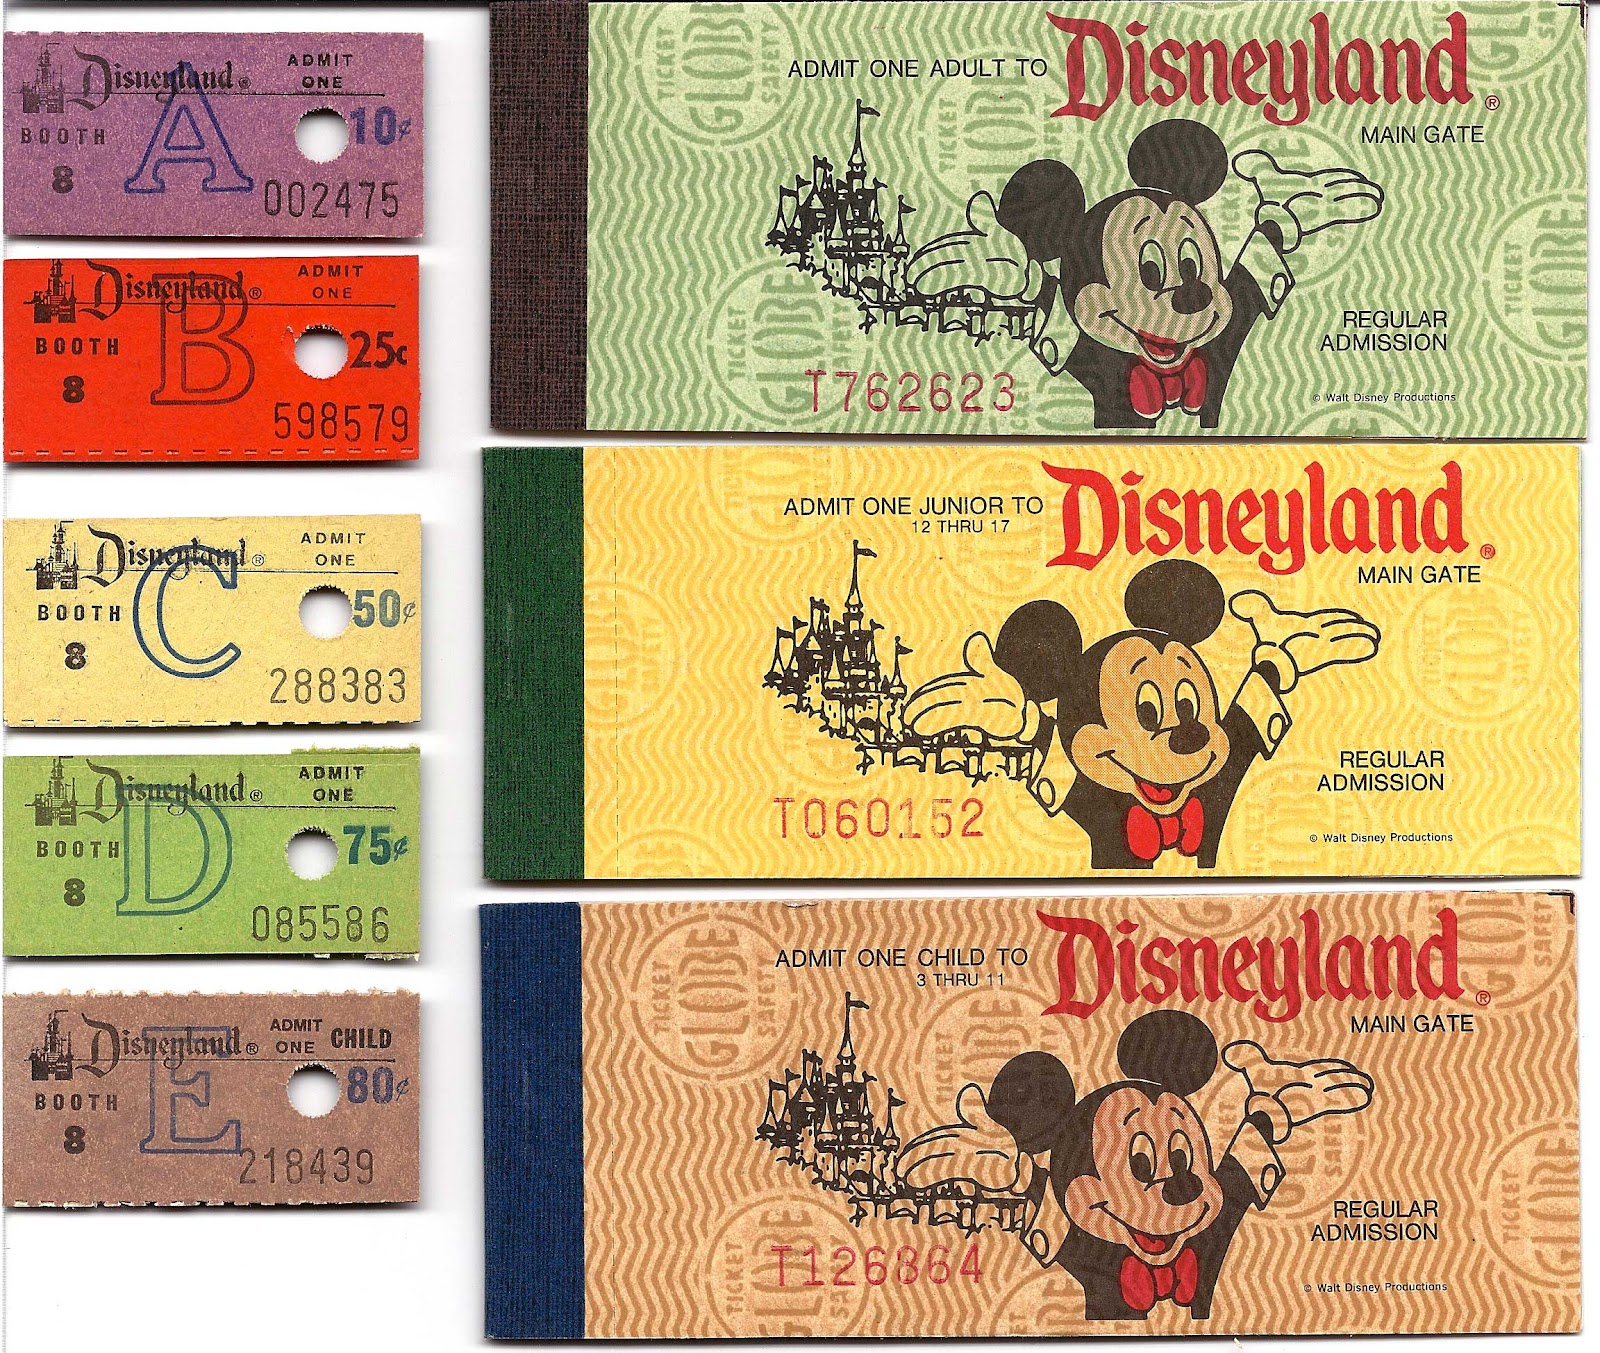 Disneyland halloween party discount tickets party invitations ideas